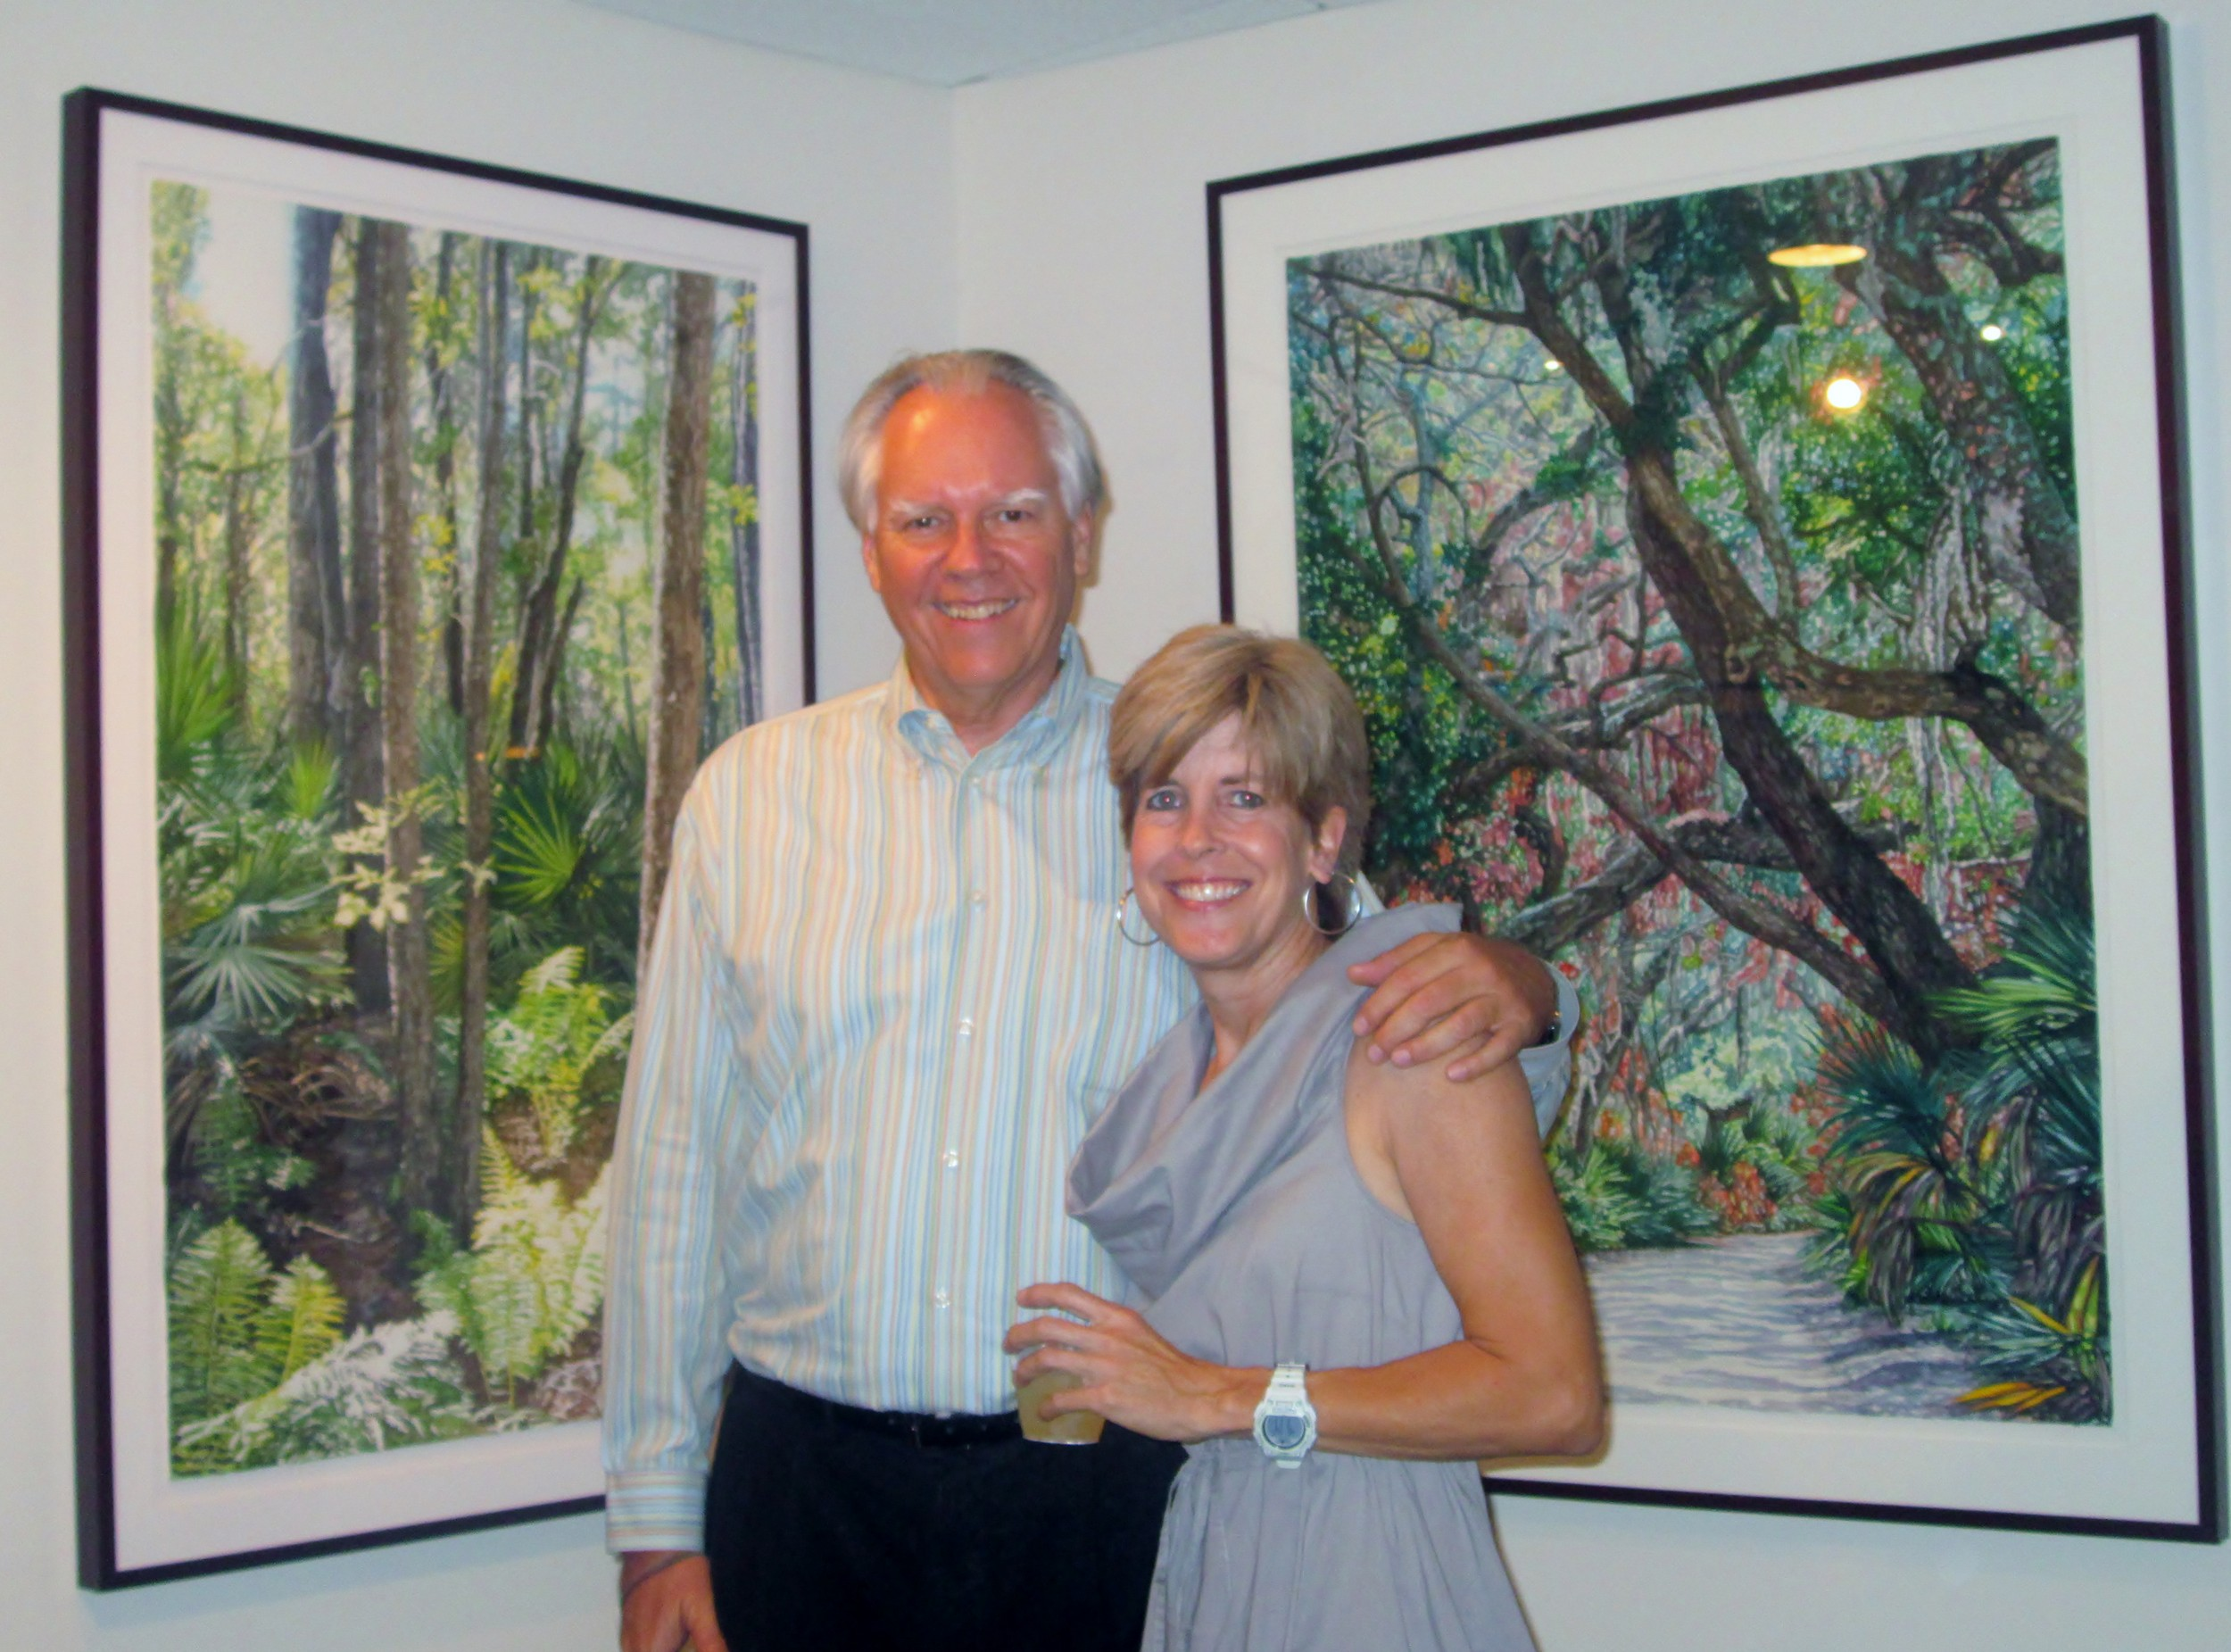 Michael Dunlap (director of Southlight Gallery), Kathy Stark